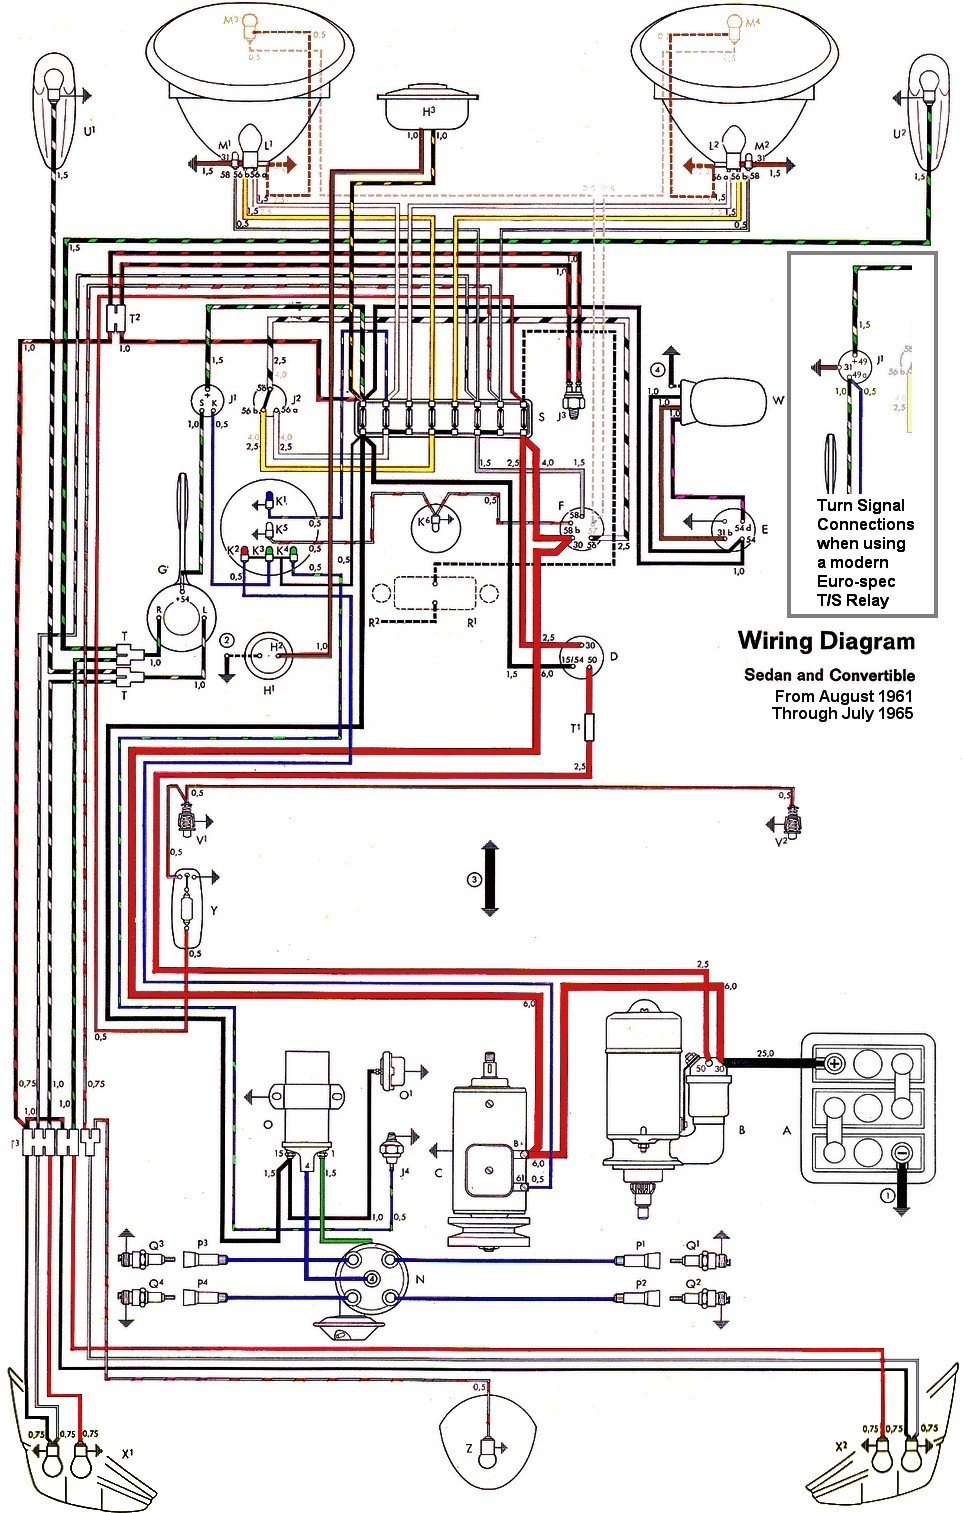 thesamba com type 1 wiring diagrams rh thesamba com 73 VW Beetle Wiring Diagram 1966 vw bug fuse diagram